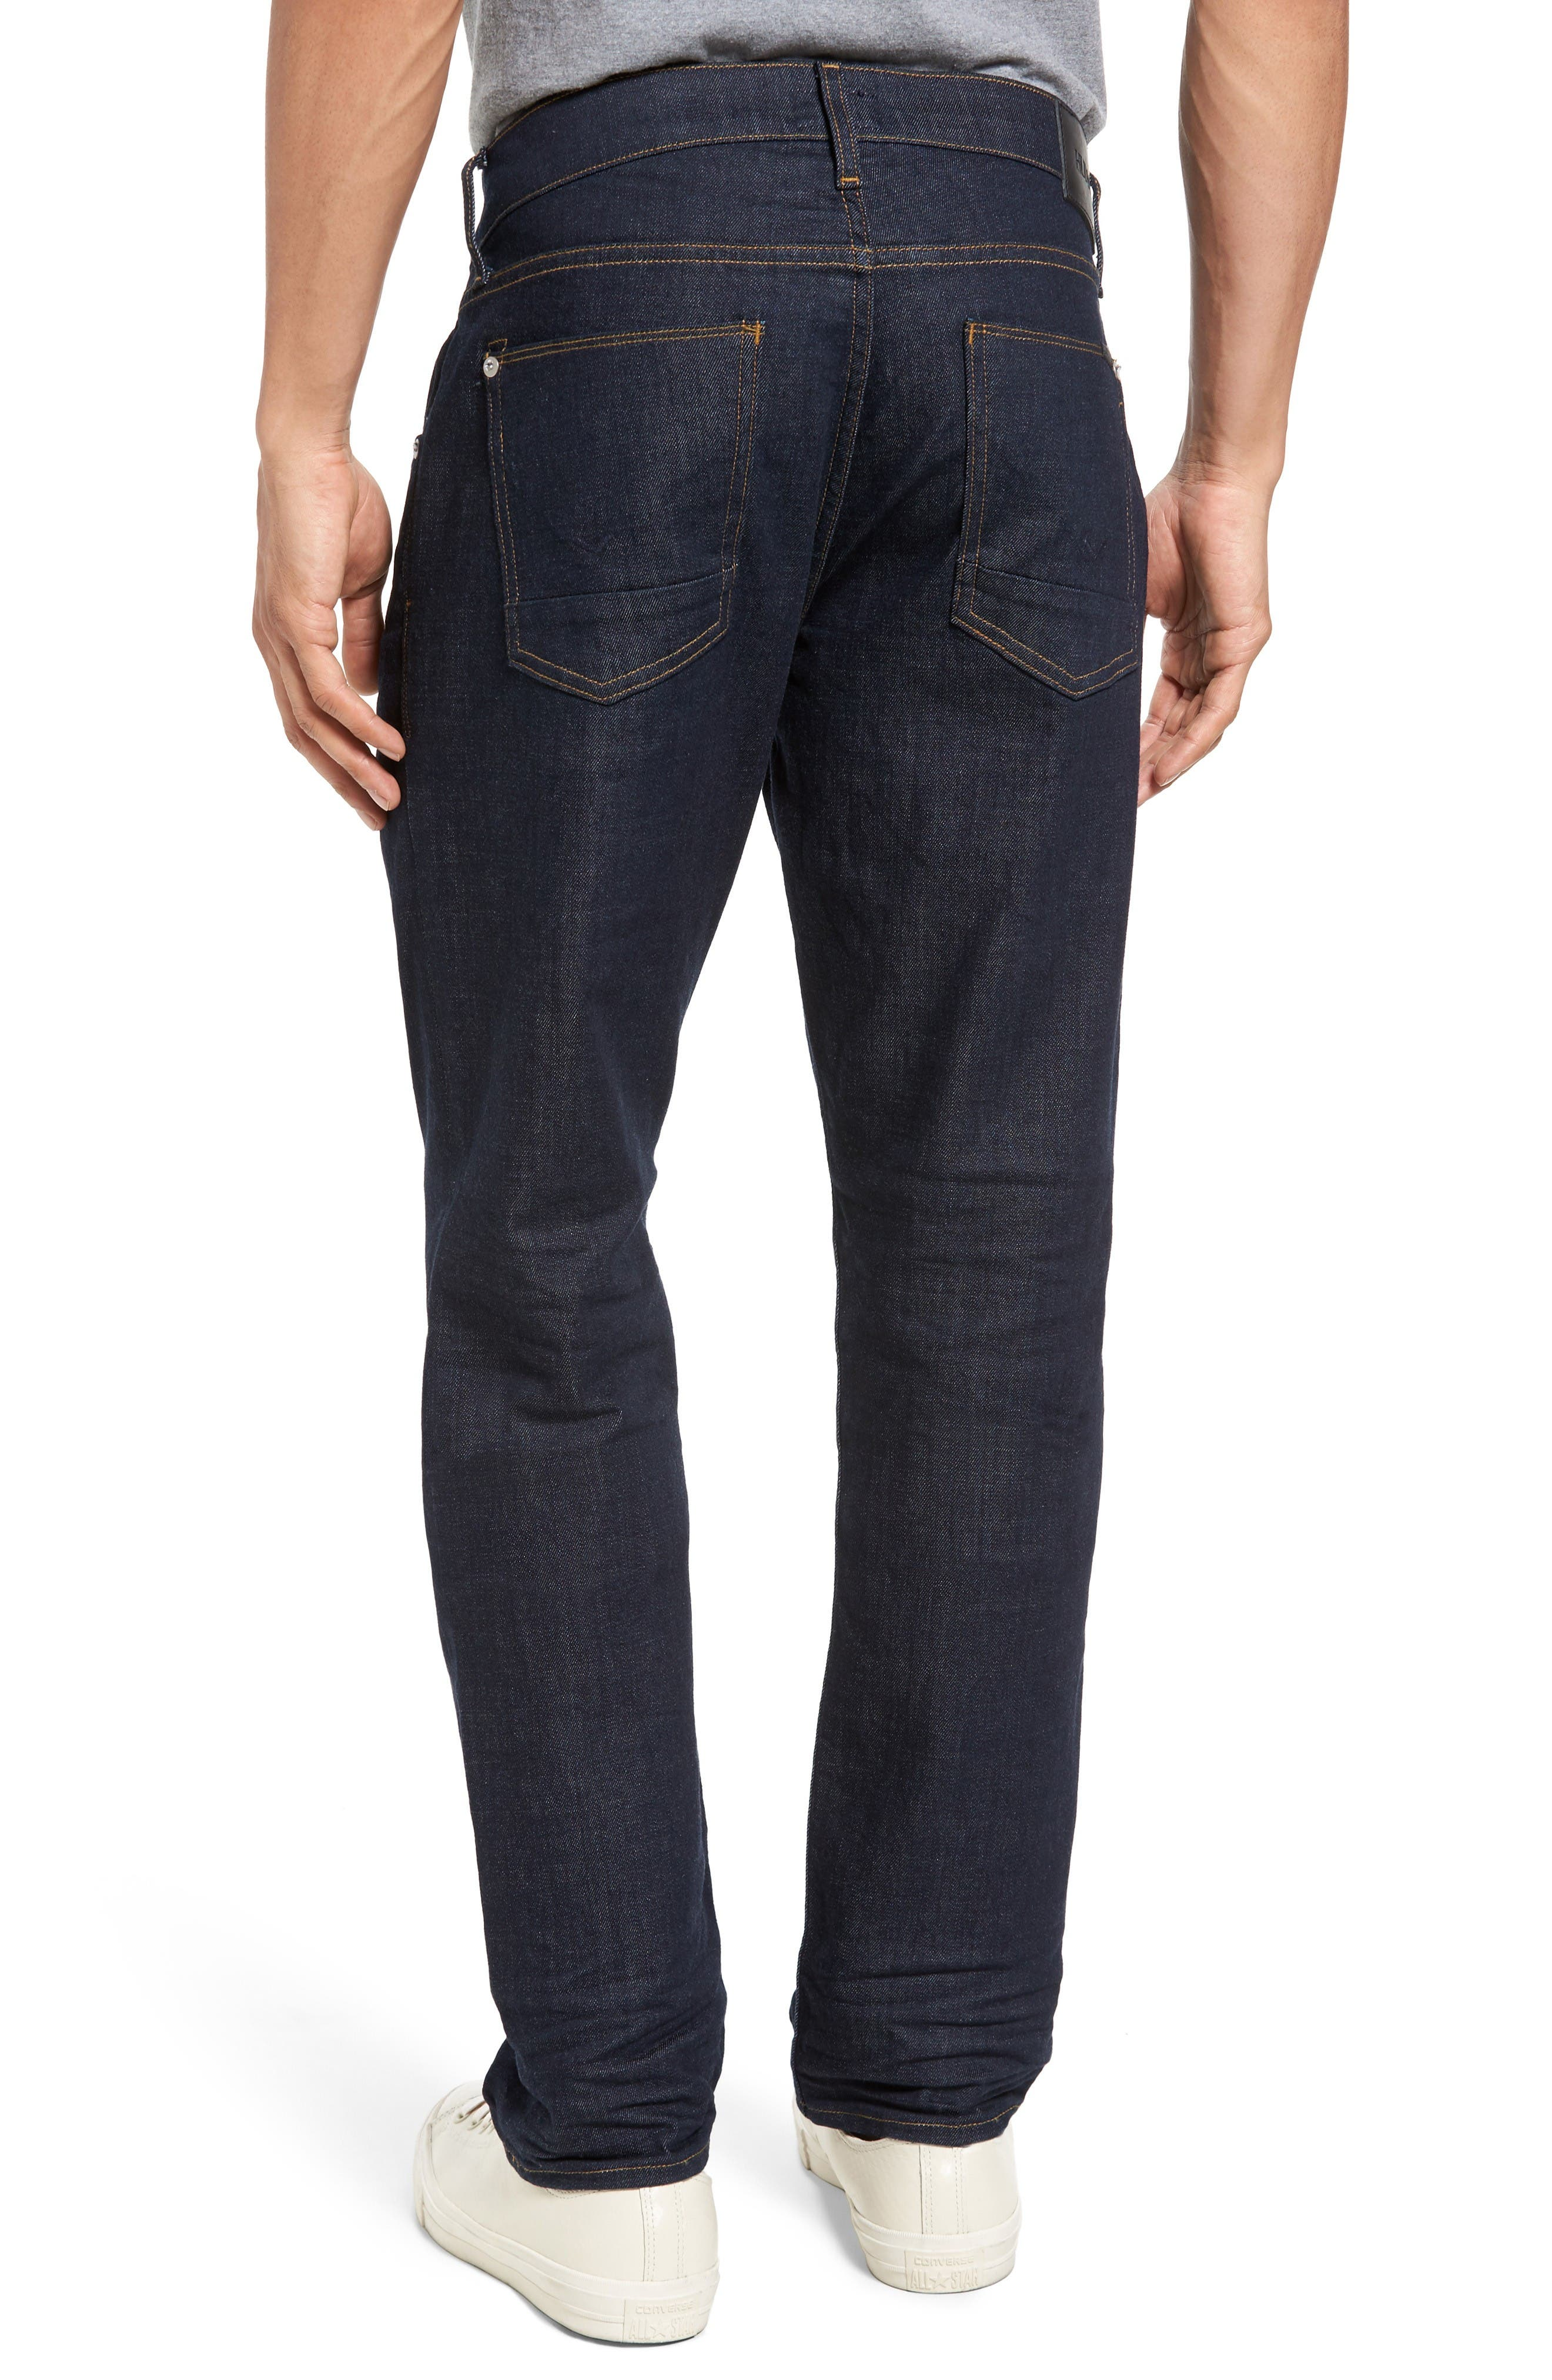 Blake Slim Fit Jeans,                             Alternate thumbnail 2, color,                             Anonymous